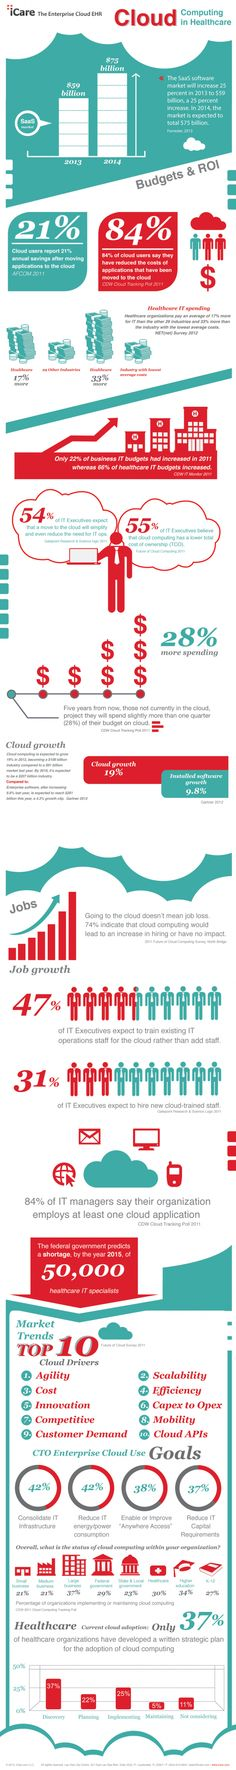 Cloud Computing in Healthcare by iCare Infographic